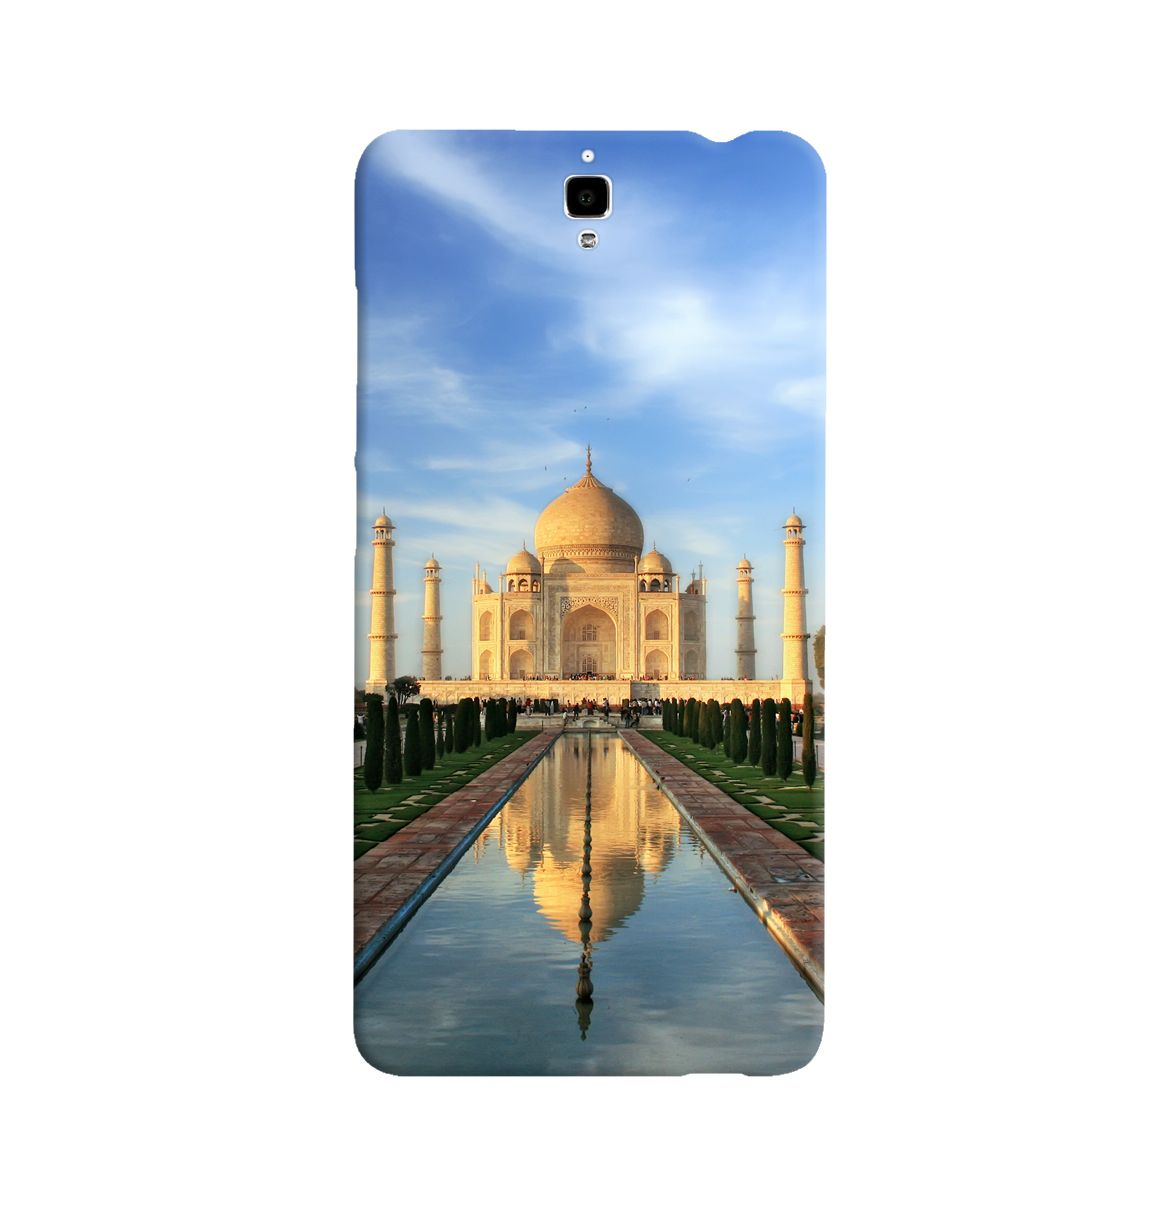 Mobile 3D back covers are the best attractive accessory to make your  mobile phone unique from other models and keep protected from scratches  and dust. It is the newest trend in the mobile phone accessories for the  dual purpose of personalization and protection as well. Linkizer offers  you wide r